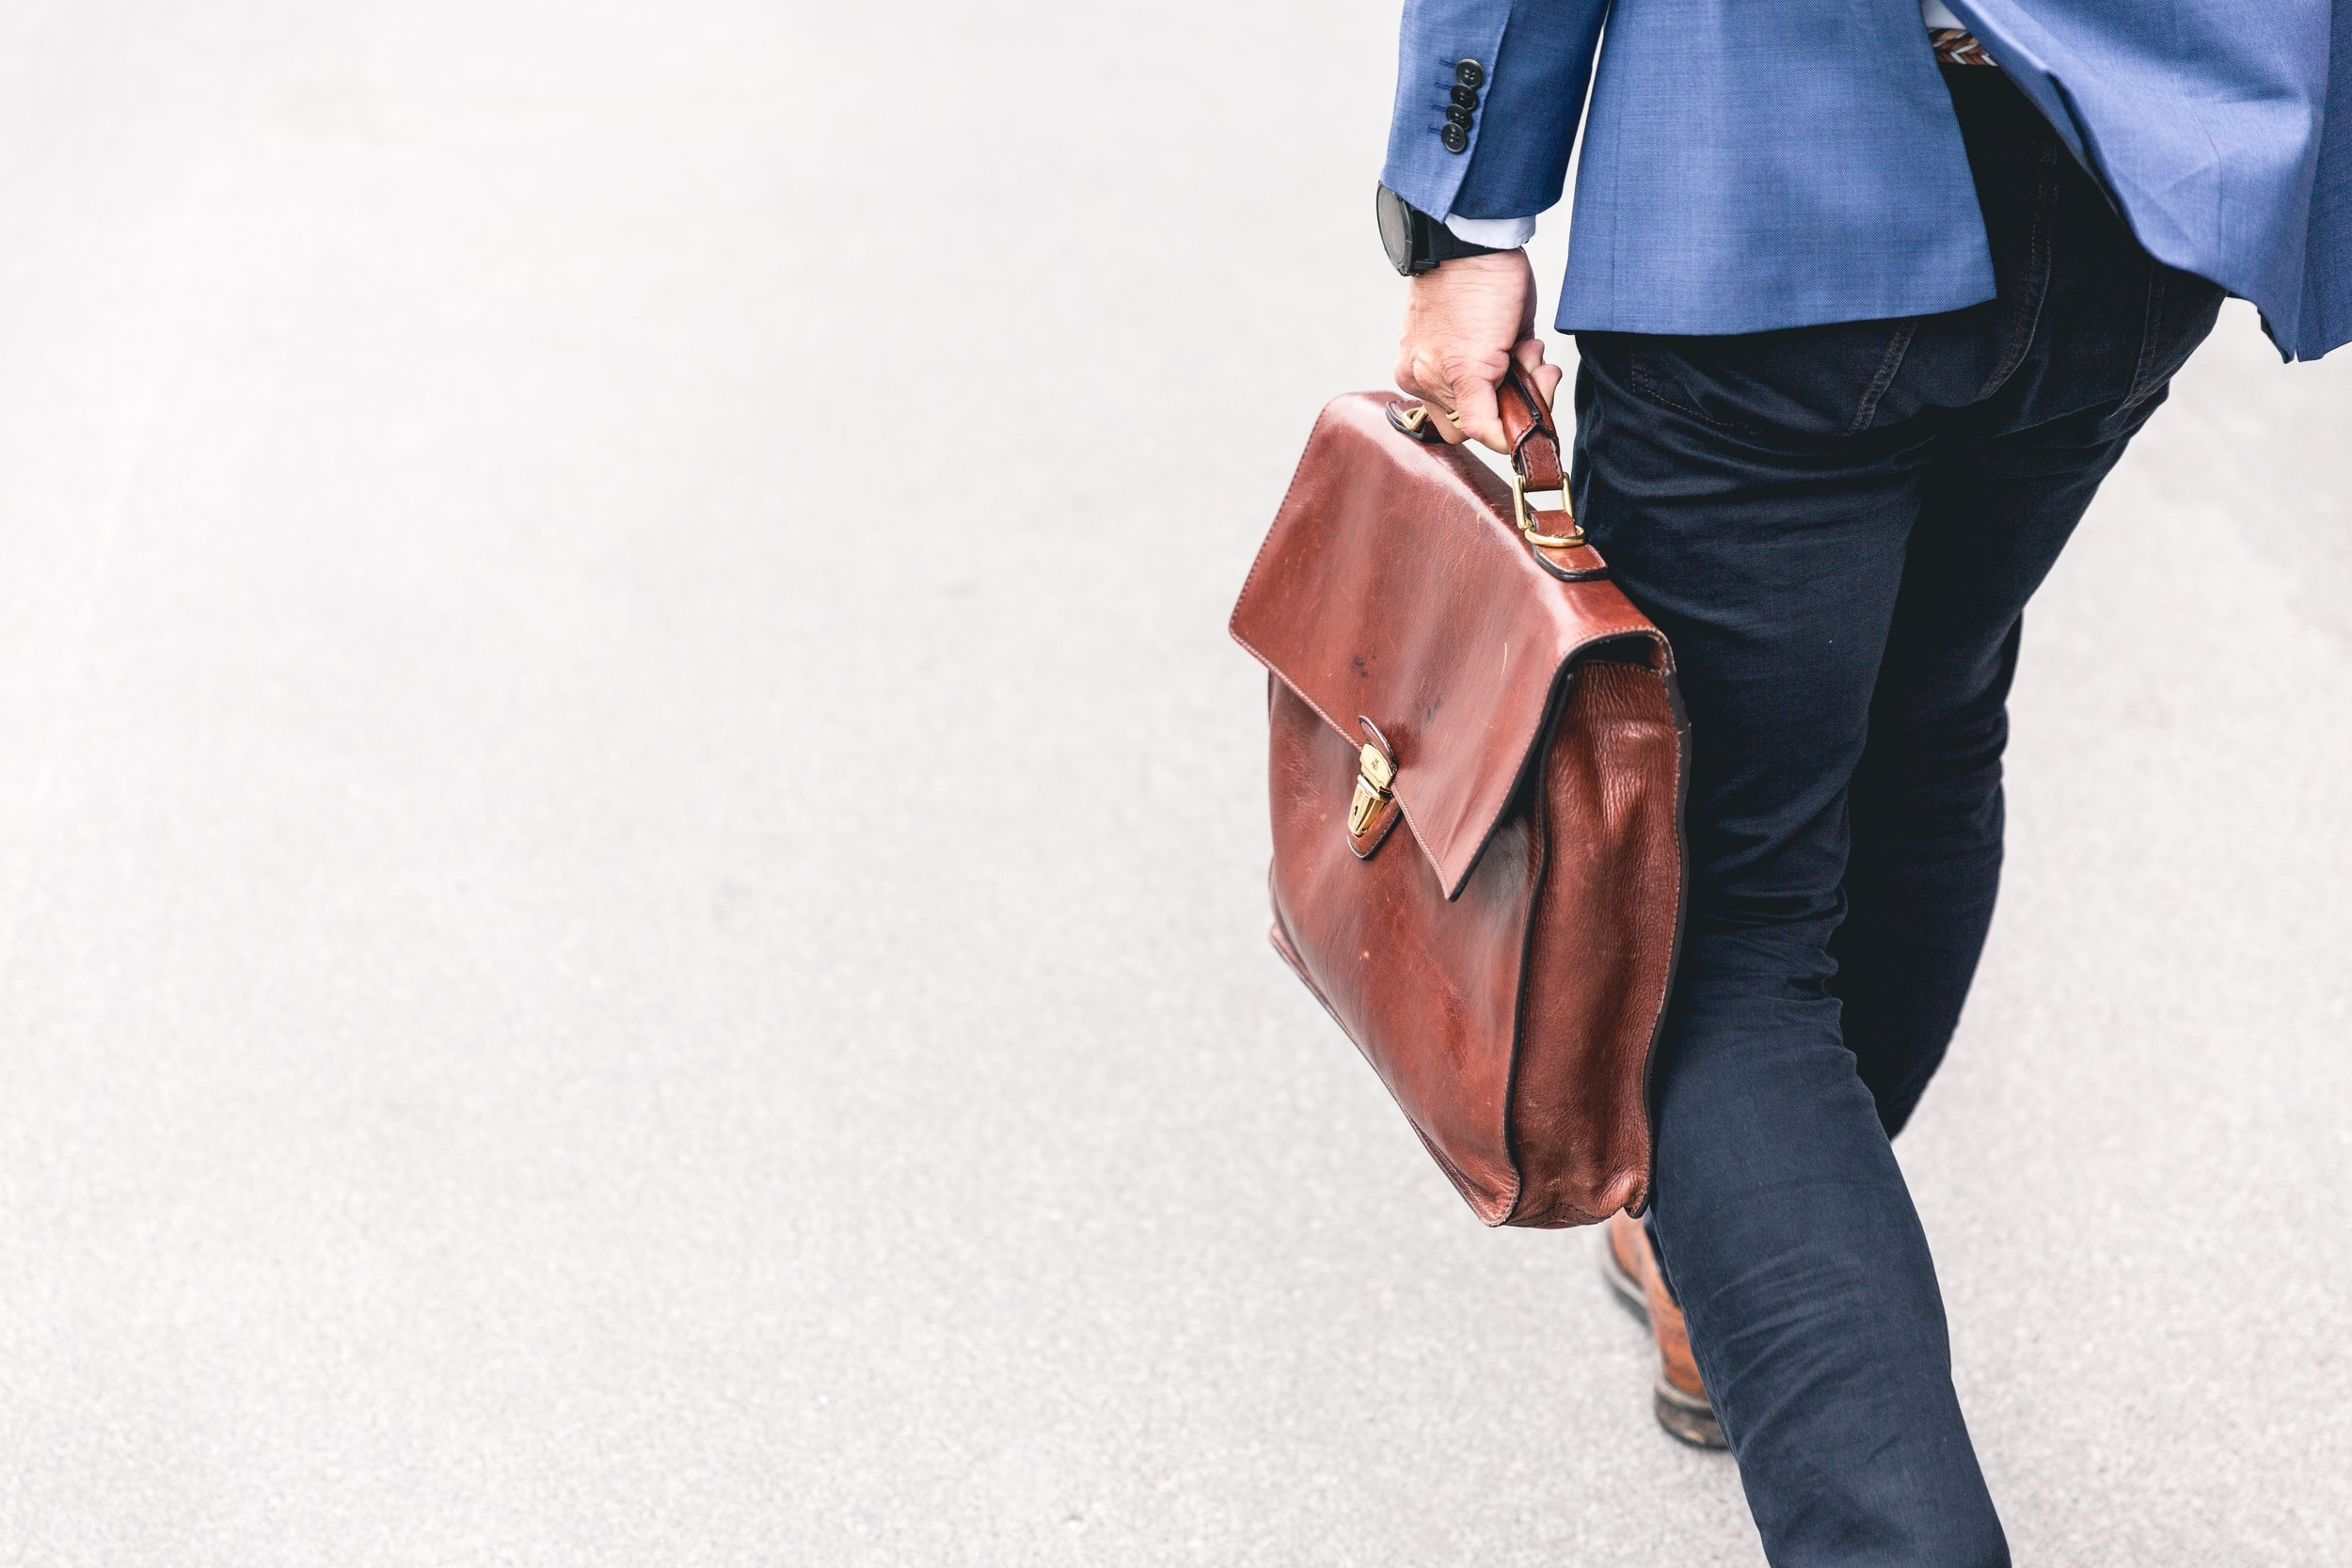 The bottom half of a man walking in jeans and a blazer while carrying a brief case